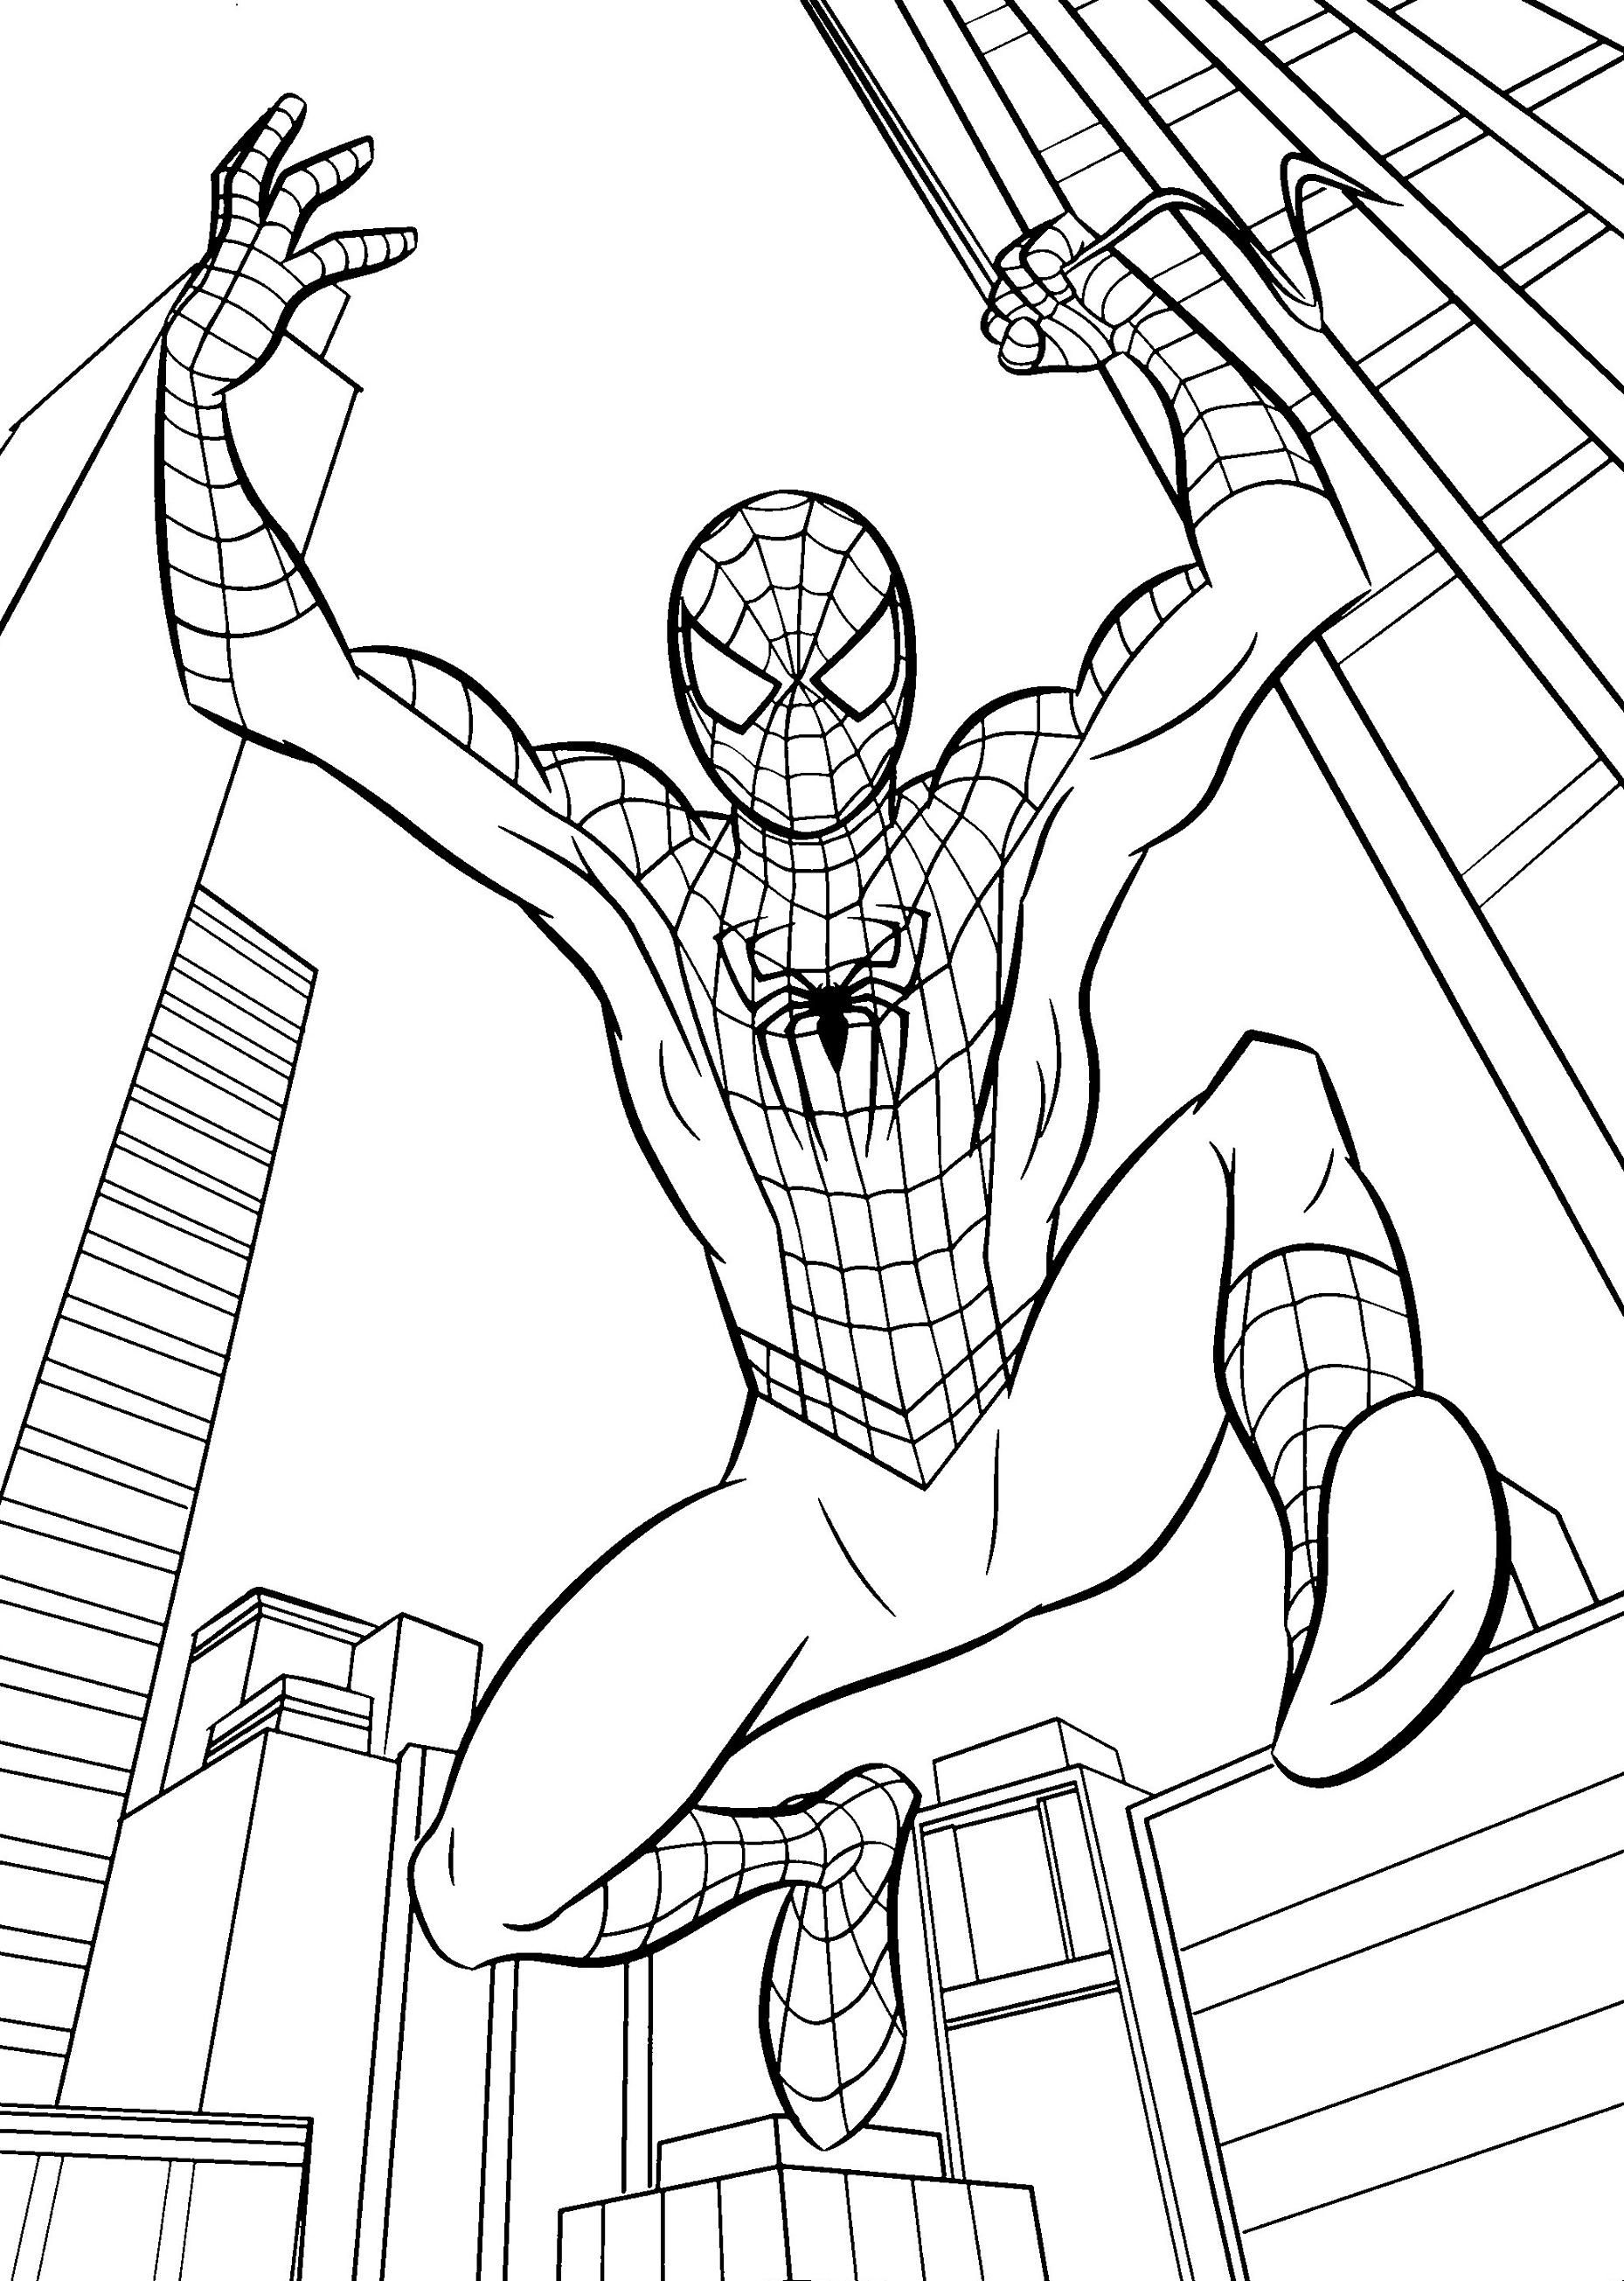 Pin von ColoringsWorld.com auf Spiderman Coloring Pages | Pinterest